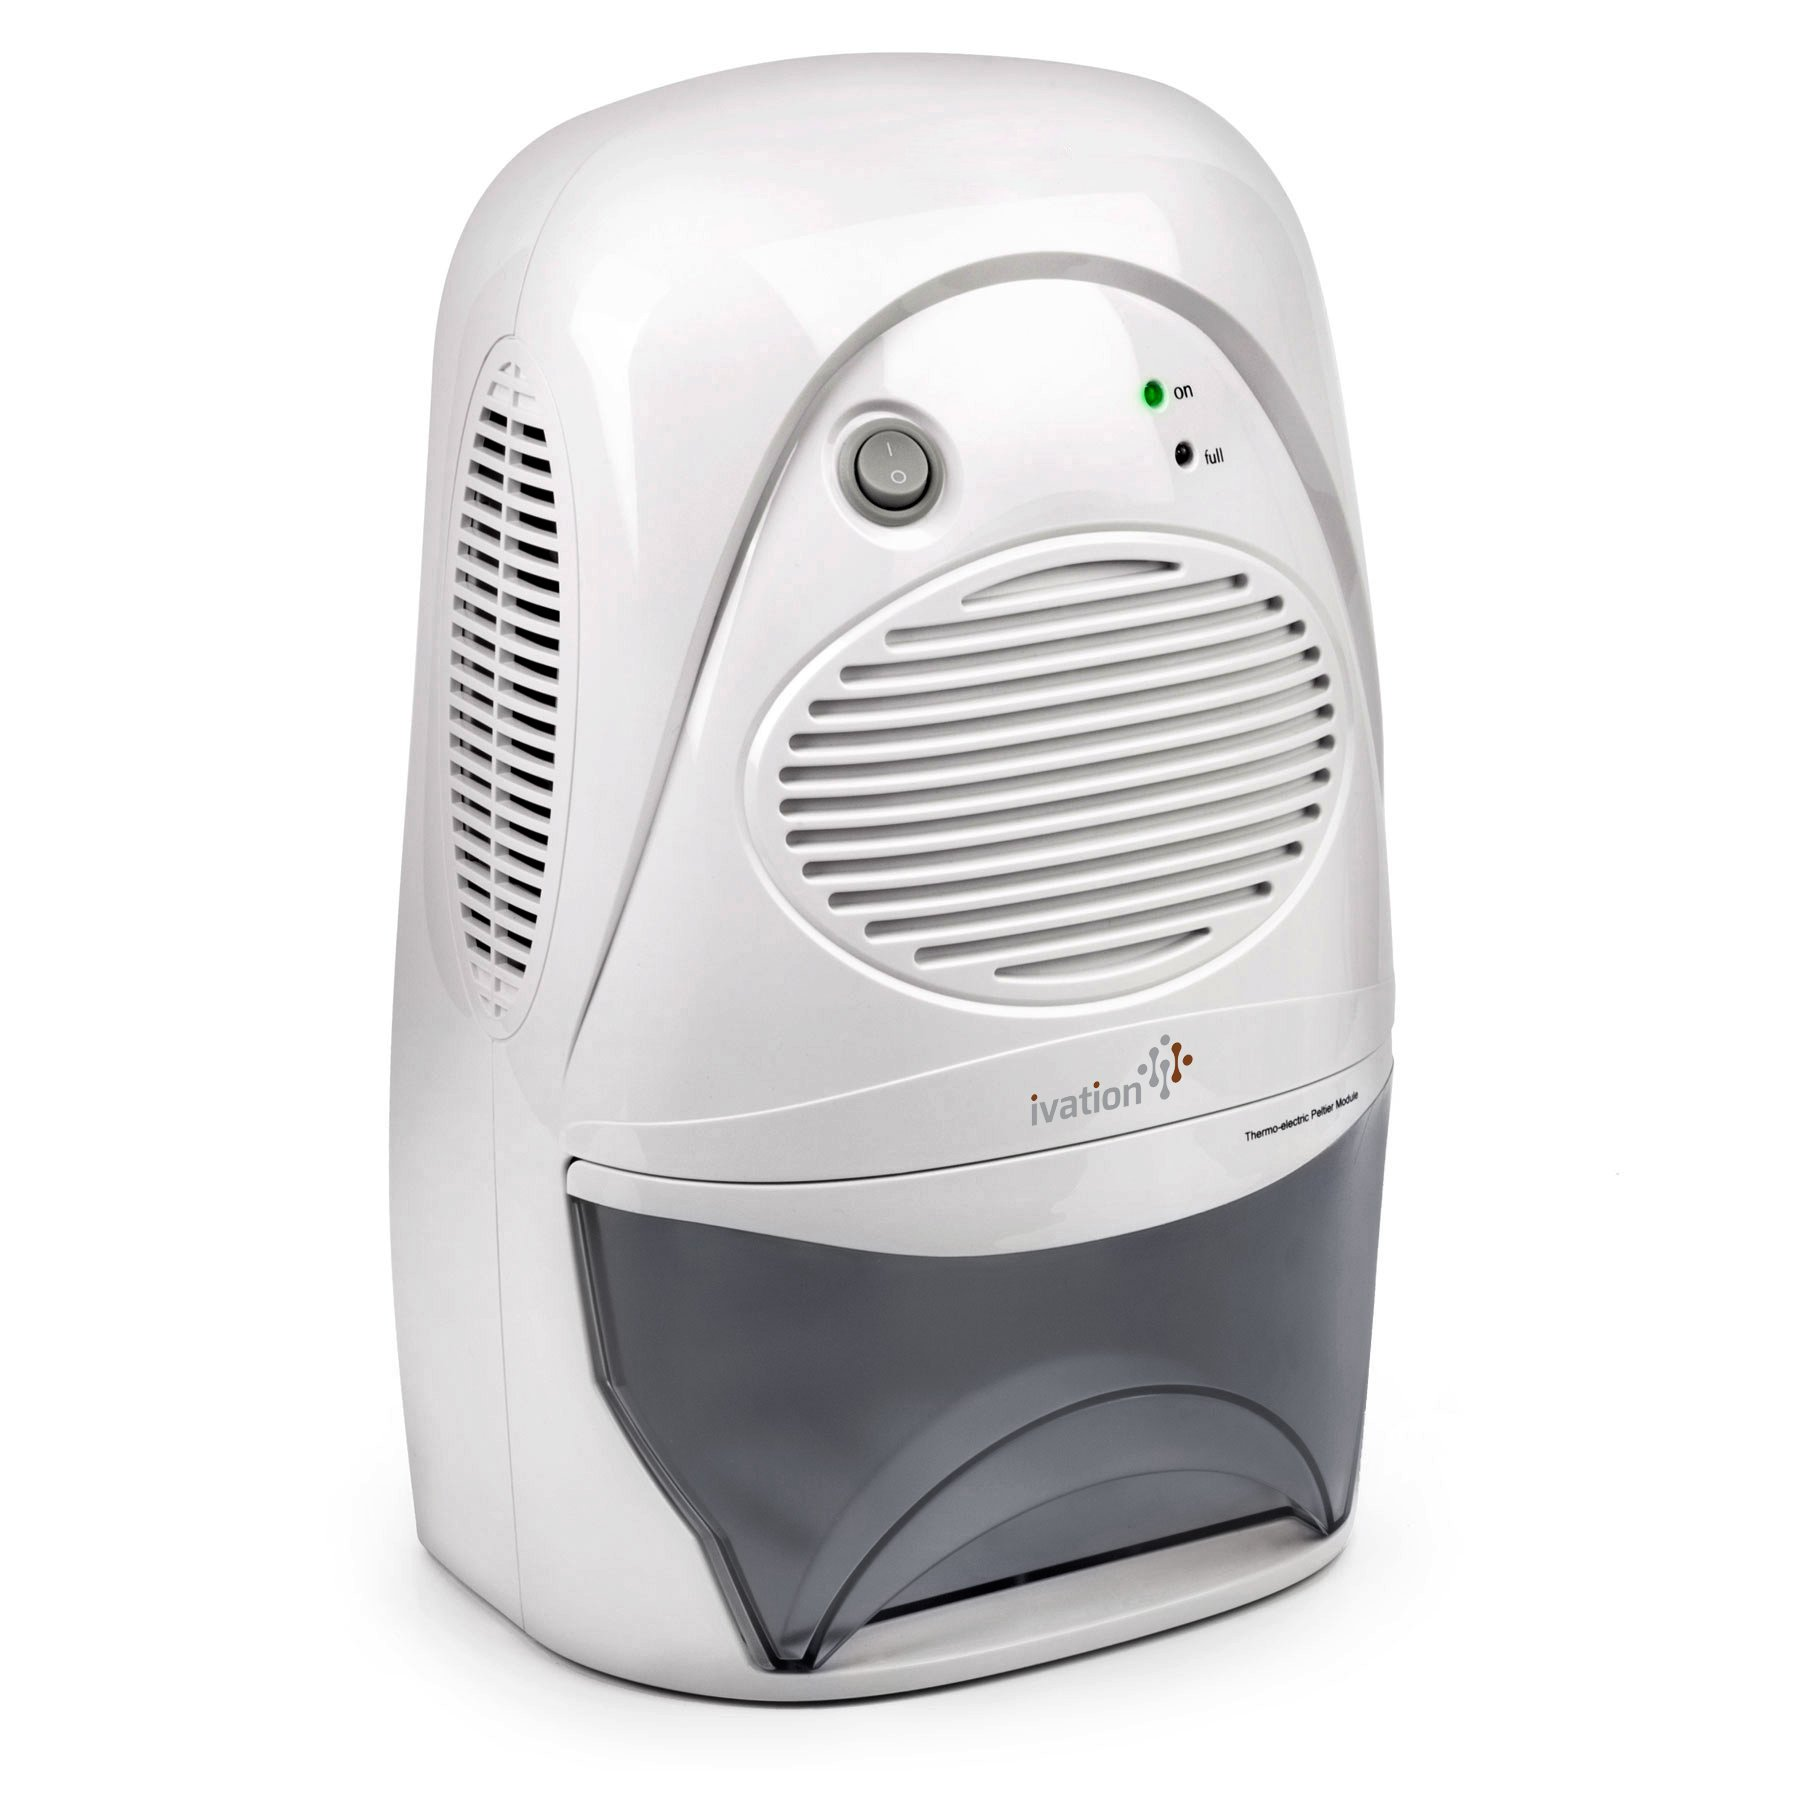 Ivation Powerful Mid-Size Thermo-Electric Dehumidifier - Quietly Gathers Up to 20oz. of Water per Day - for Spaces Up to 2,200 Cubic Feet